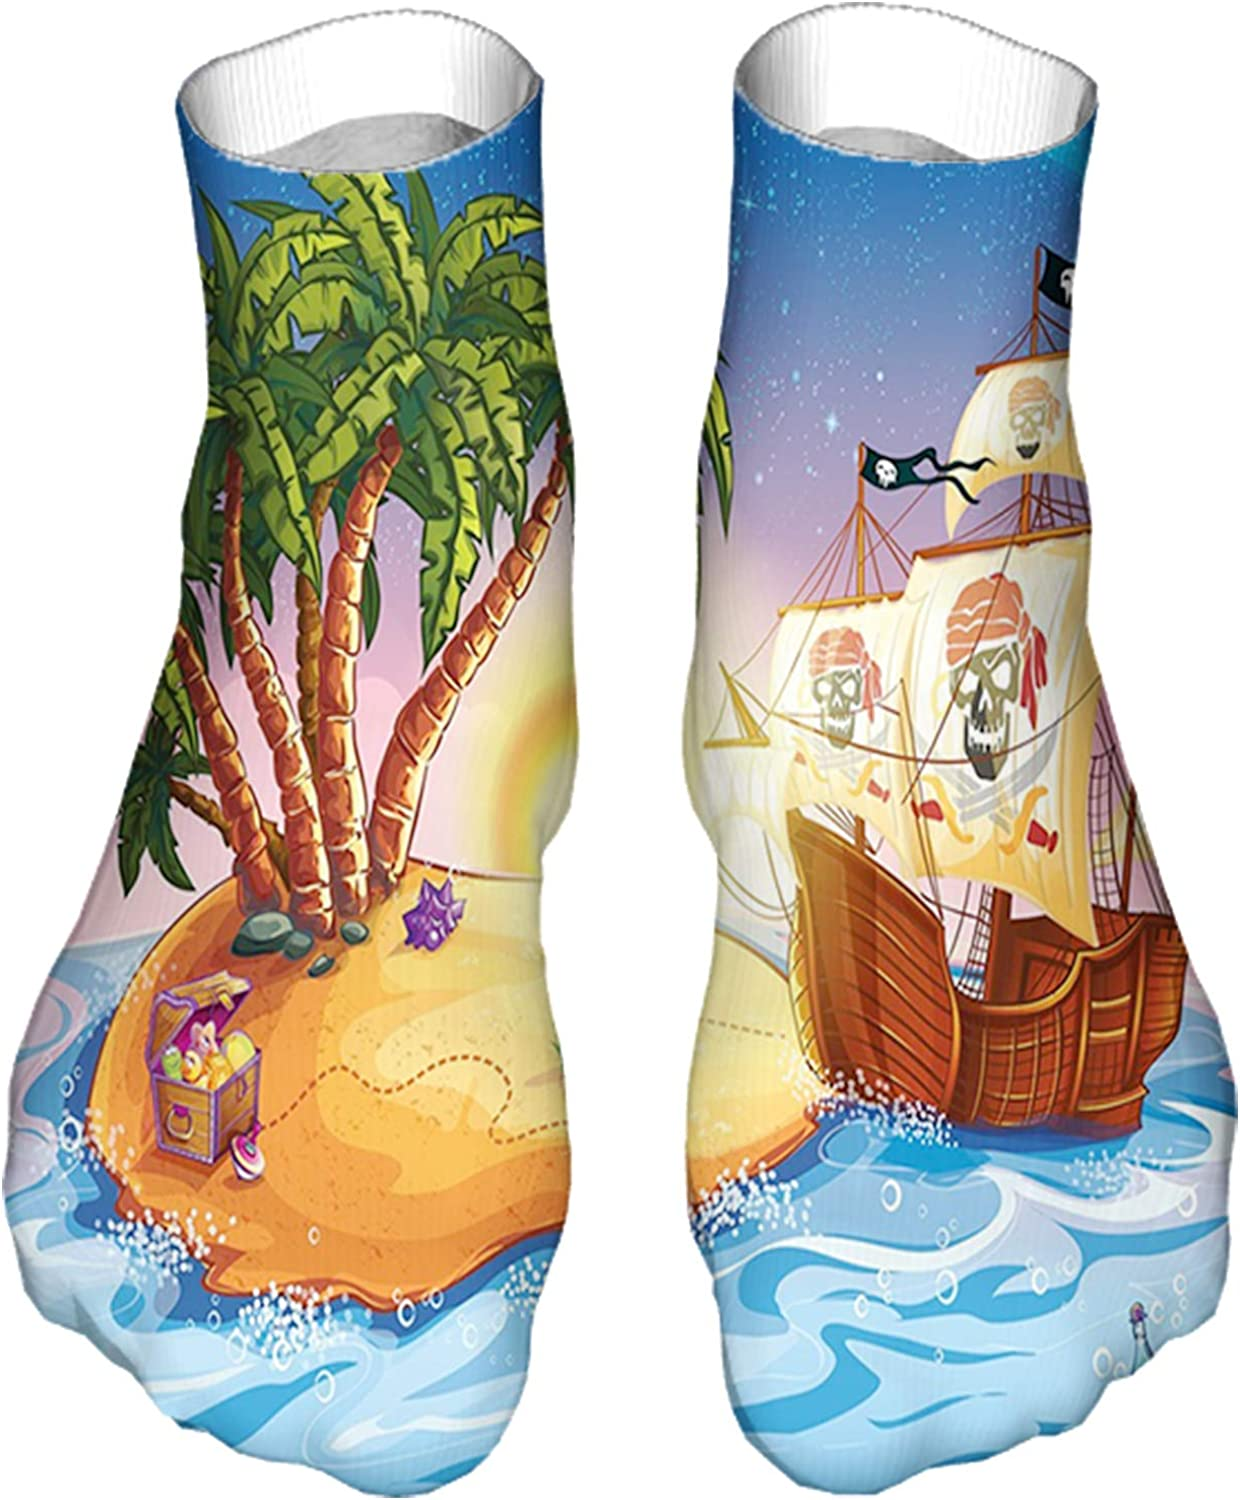 Men's and Women's Funny Casual Socks Ghost Ship on Exotic Sea Near Treasure Island with Palm Tree